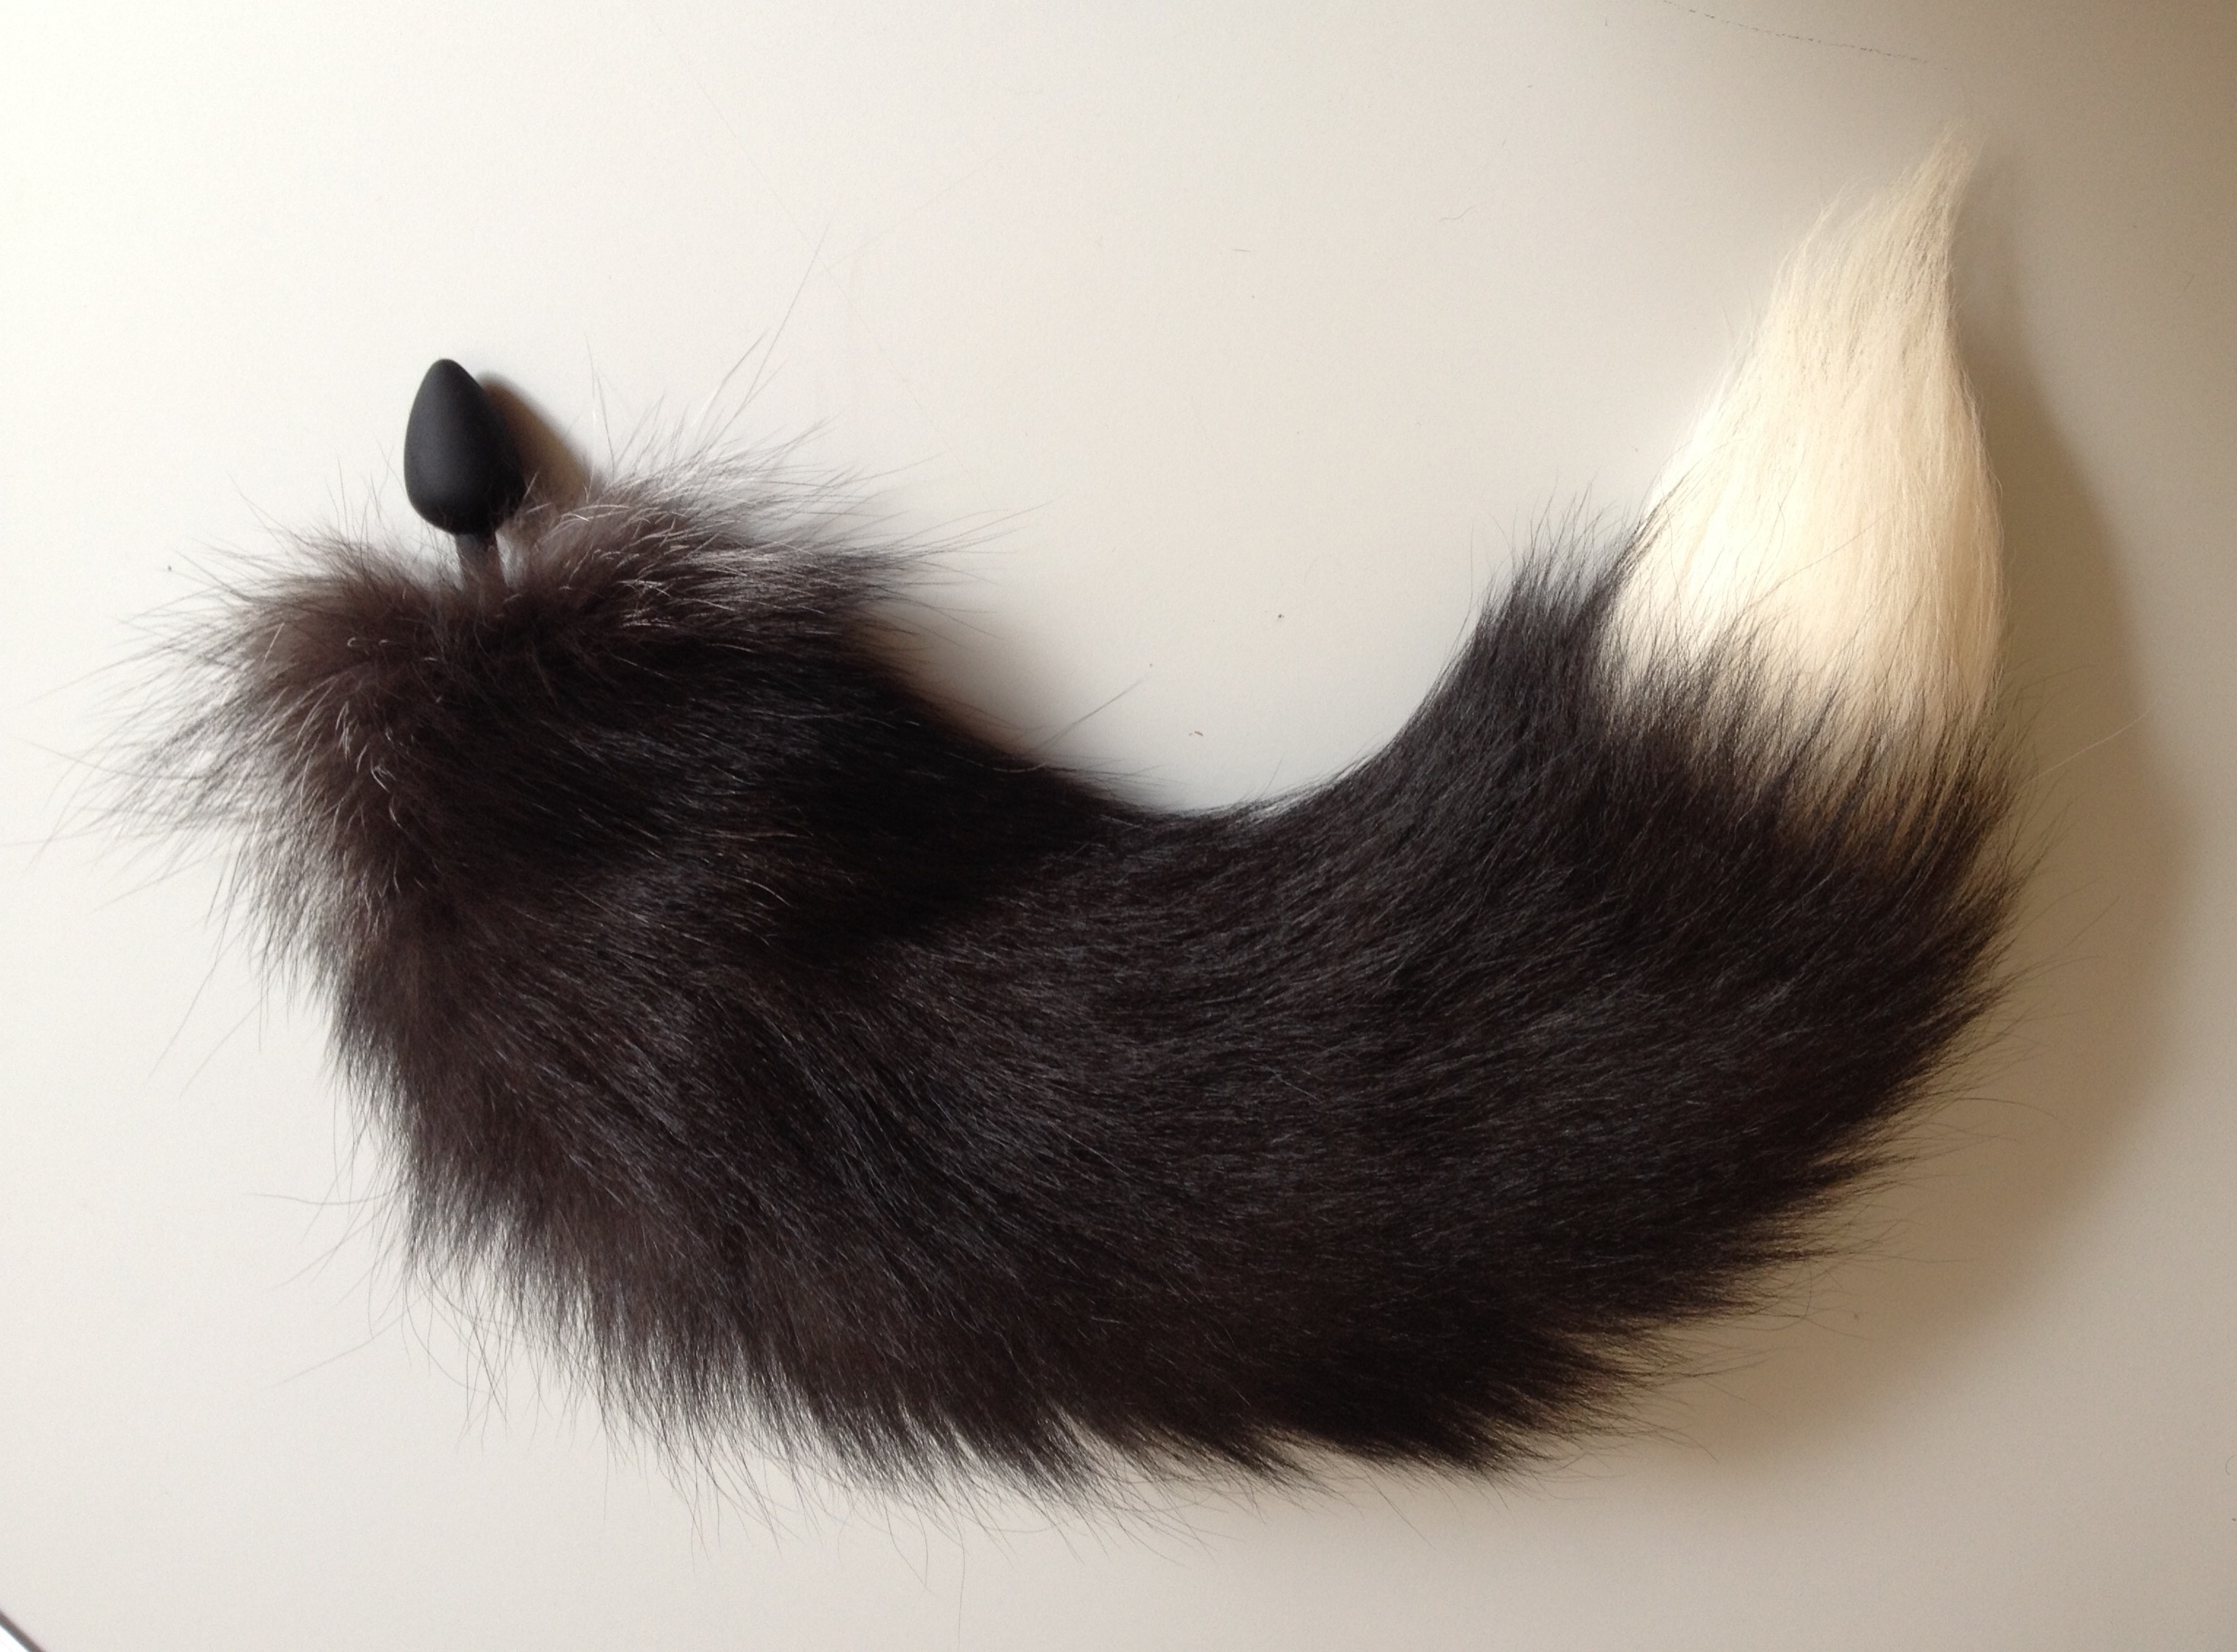 Fuchsschweif Pelz Anal Plug Stecker Stöpsel Fuchs Schweif Silberfuchs Pelz Fetisch Pet Play Petplay Genuine Silver Fox Fur Tail Butt Plug Fur Fetisch Furry Furries fétiche fourrure